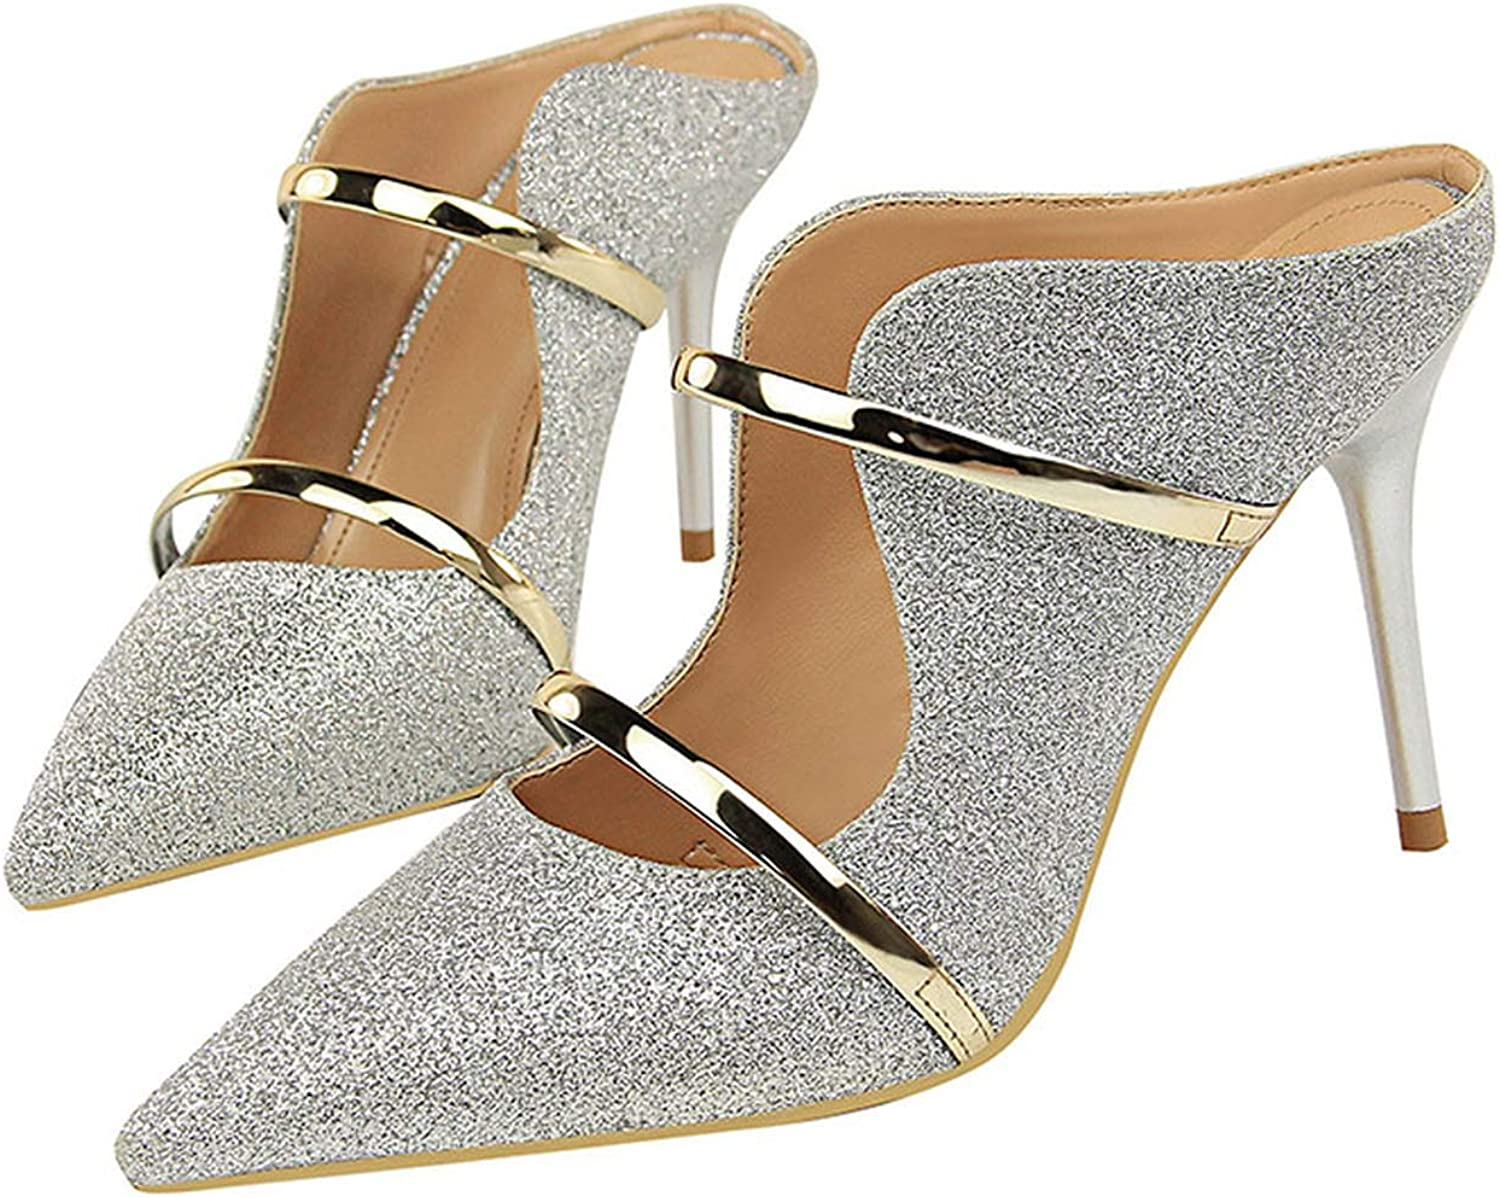 New Bling Sexy Leisure High Heels Platform Pumps for Party Wedding shoes Night Club Woman Pumps